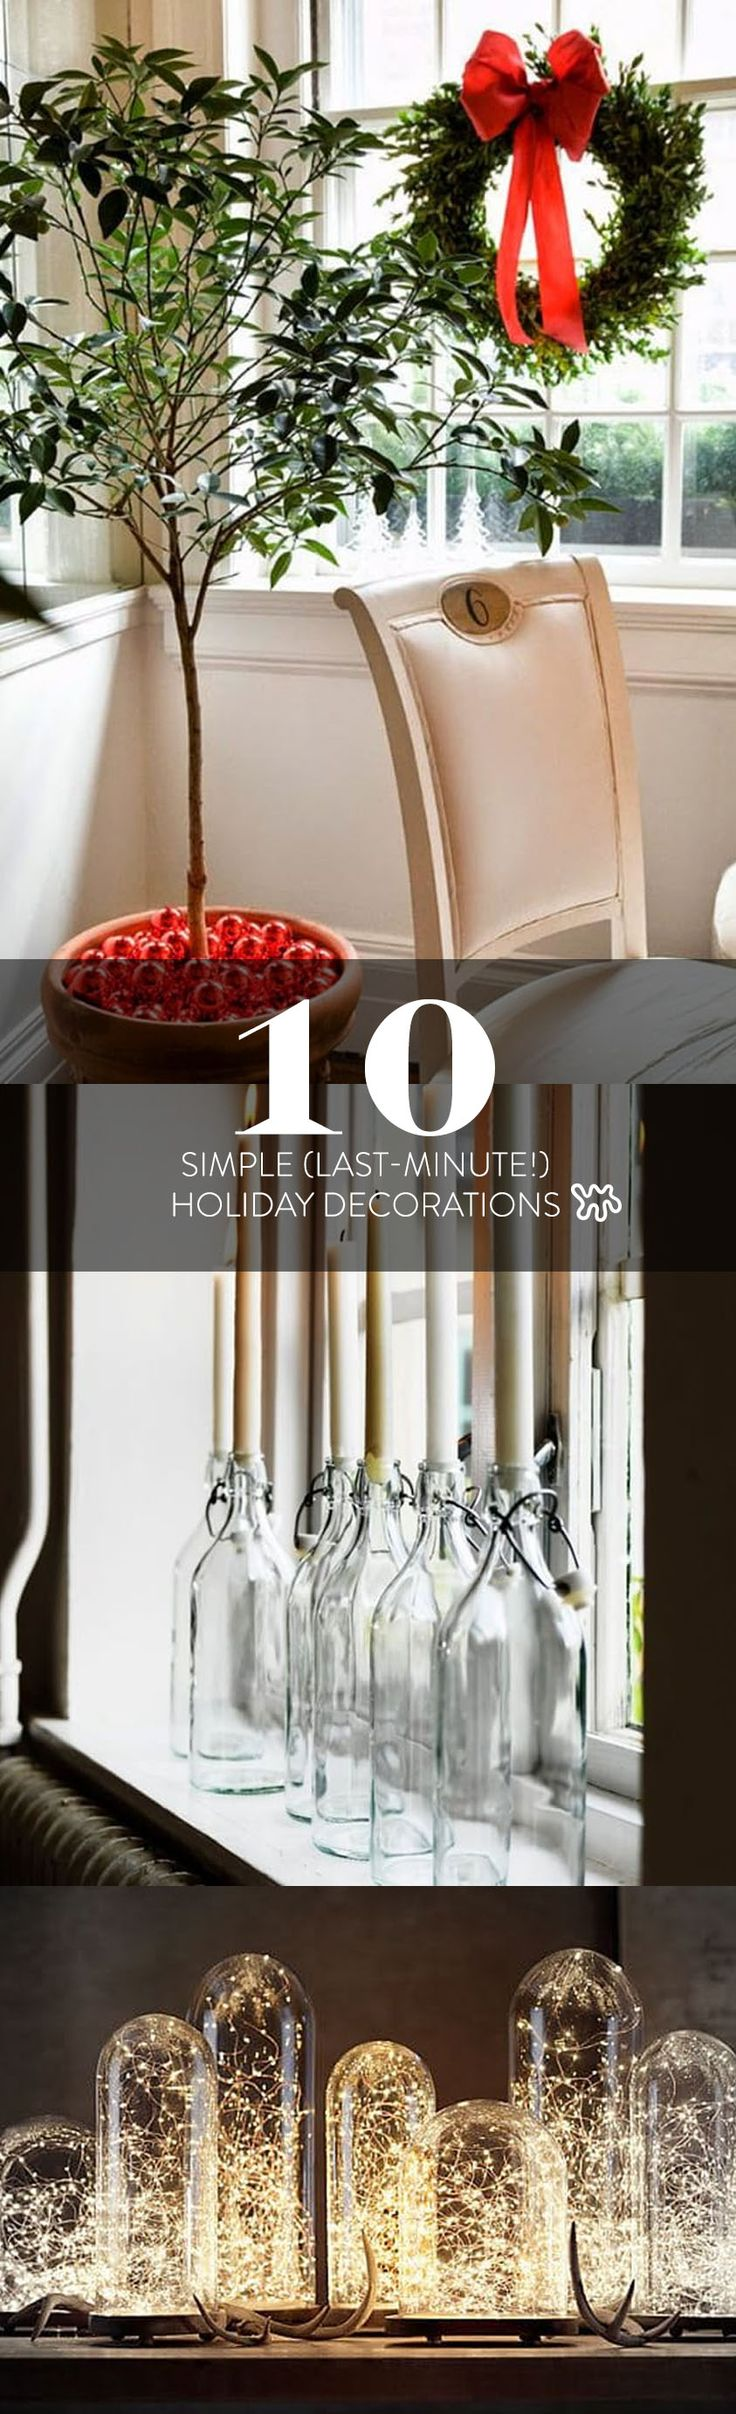 Here are ten decorating ideas that are beautiful, modern, and almost shamefully easy to execute. If you don't have the space, or the time, to decorate a whole Christmas tree, ideas like a pine branch in a pretty vase makes a lovely alternative.